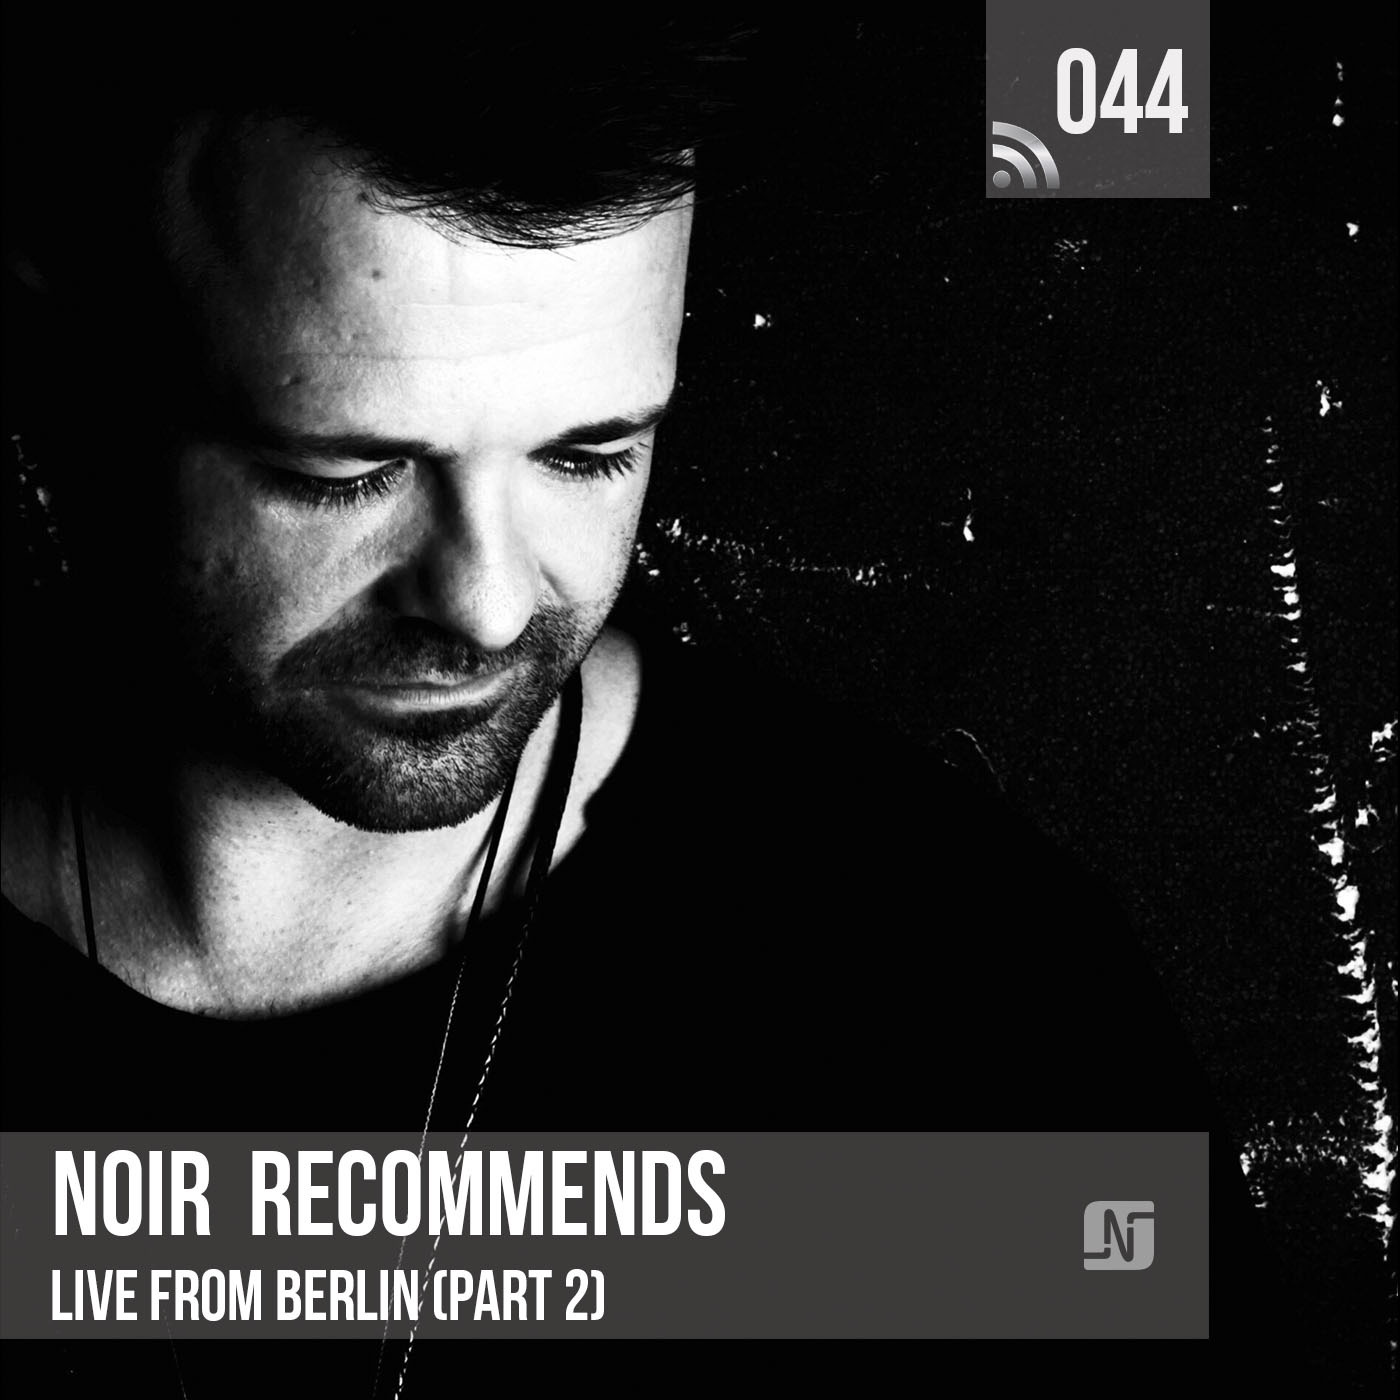 Noir Recommends :: Episode 044, live at Ipse, Berlin, part 2 (aired on December 19th, 2017) banner logo